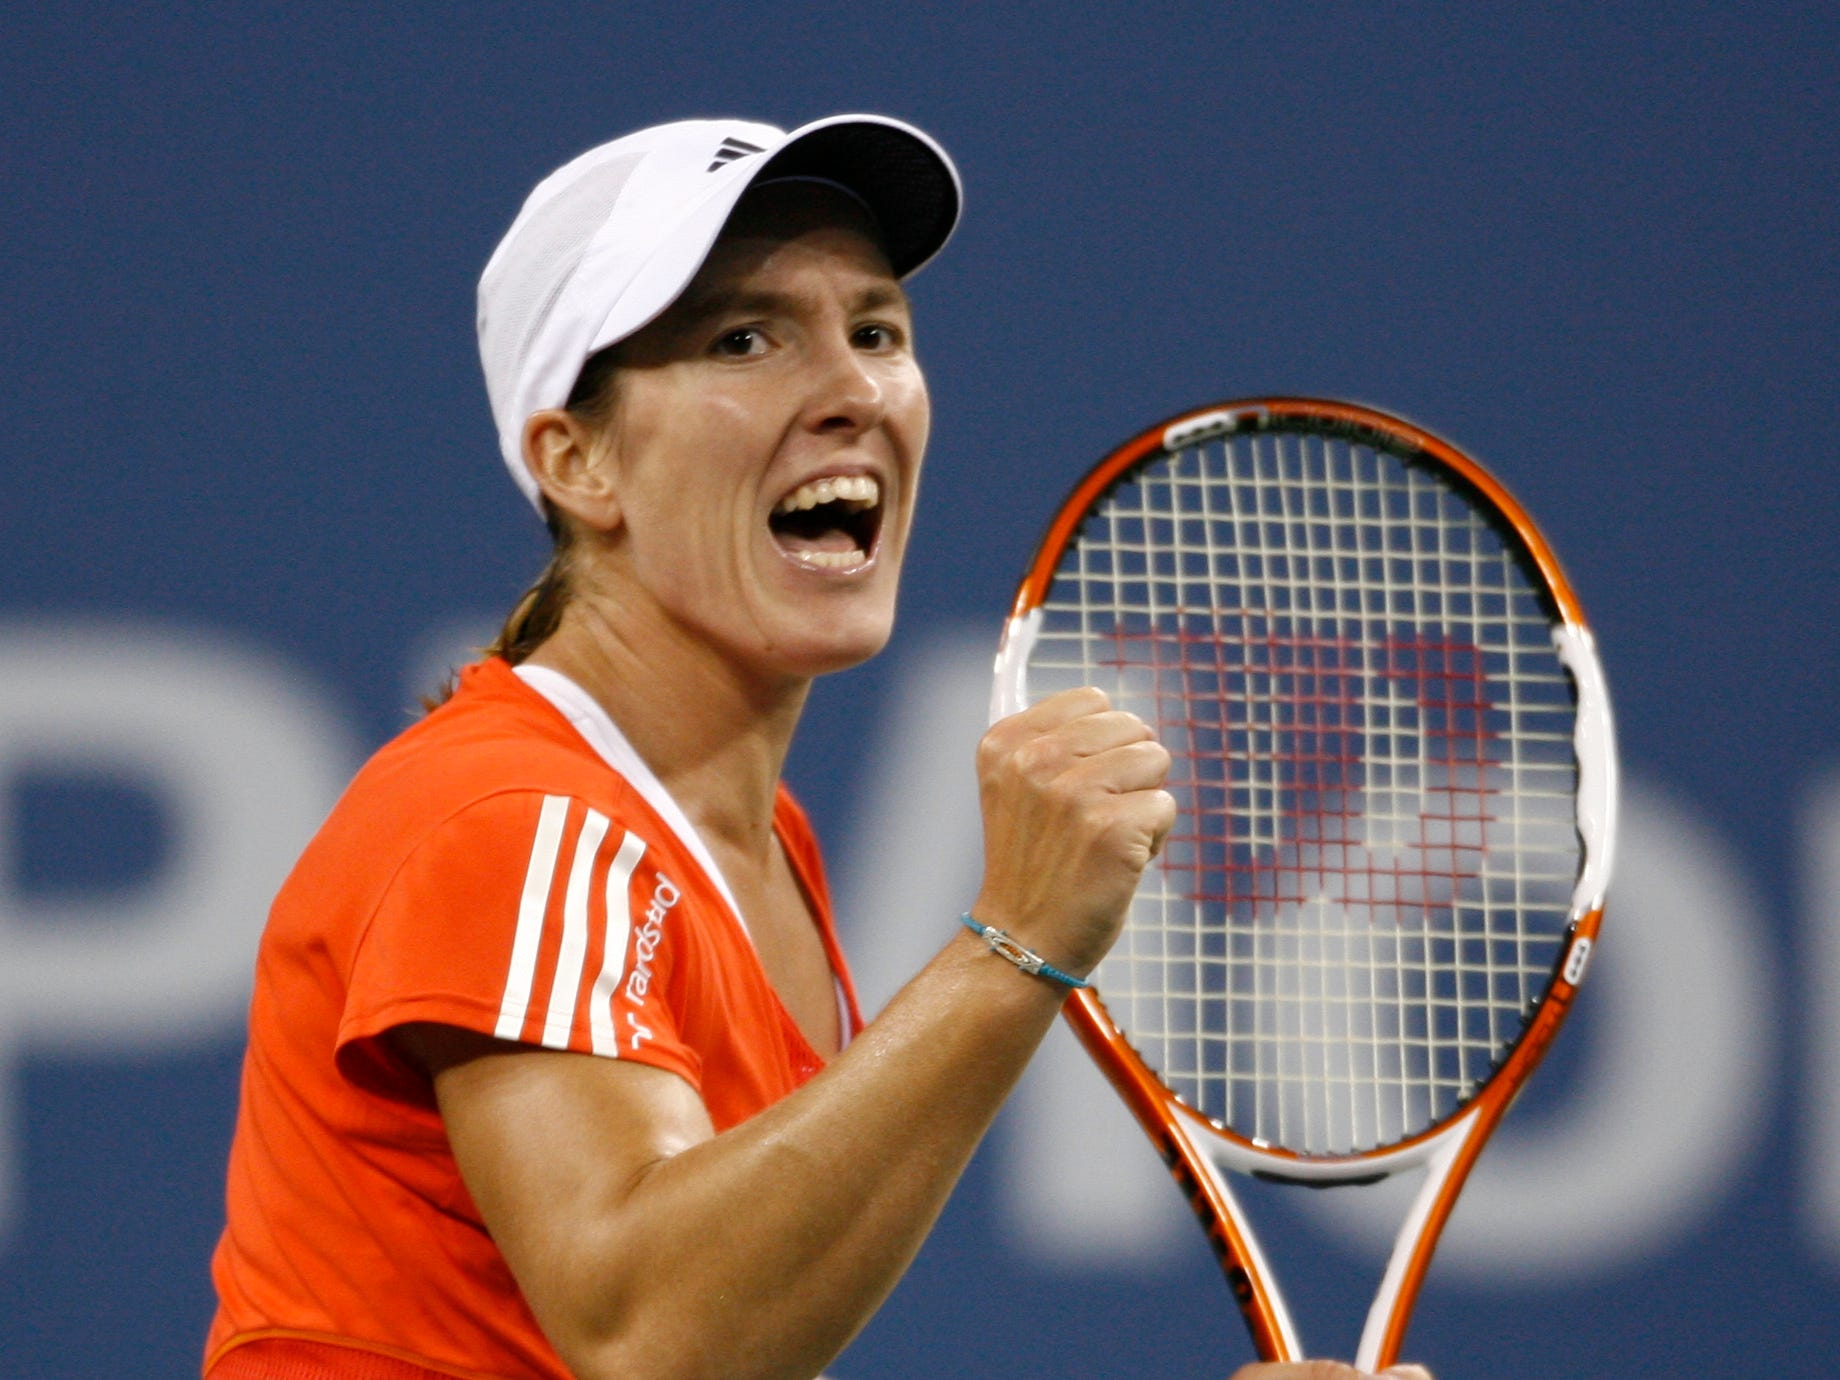 Justine Henin (6-8). One of Serena's fiercest rivals, leading to occasional controversy, in the early-to-mid 2000s. Henin, who retired in 2011, won seven major titles, including four French Opens. Serena won their final matchup, the final of the 2010 Australian Open.